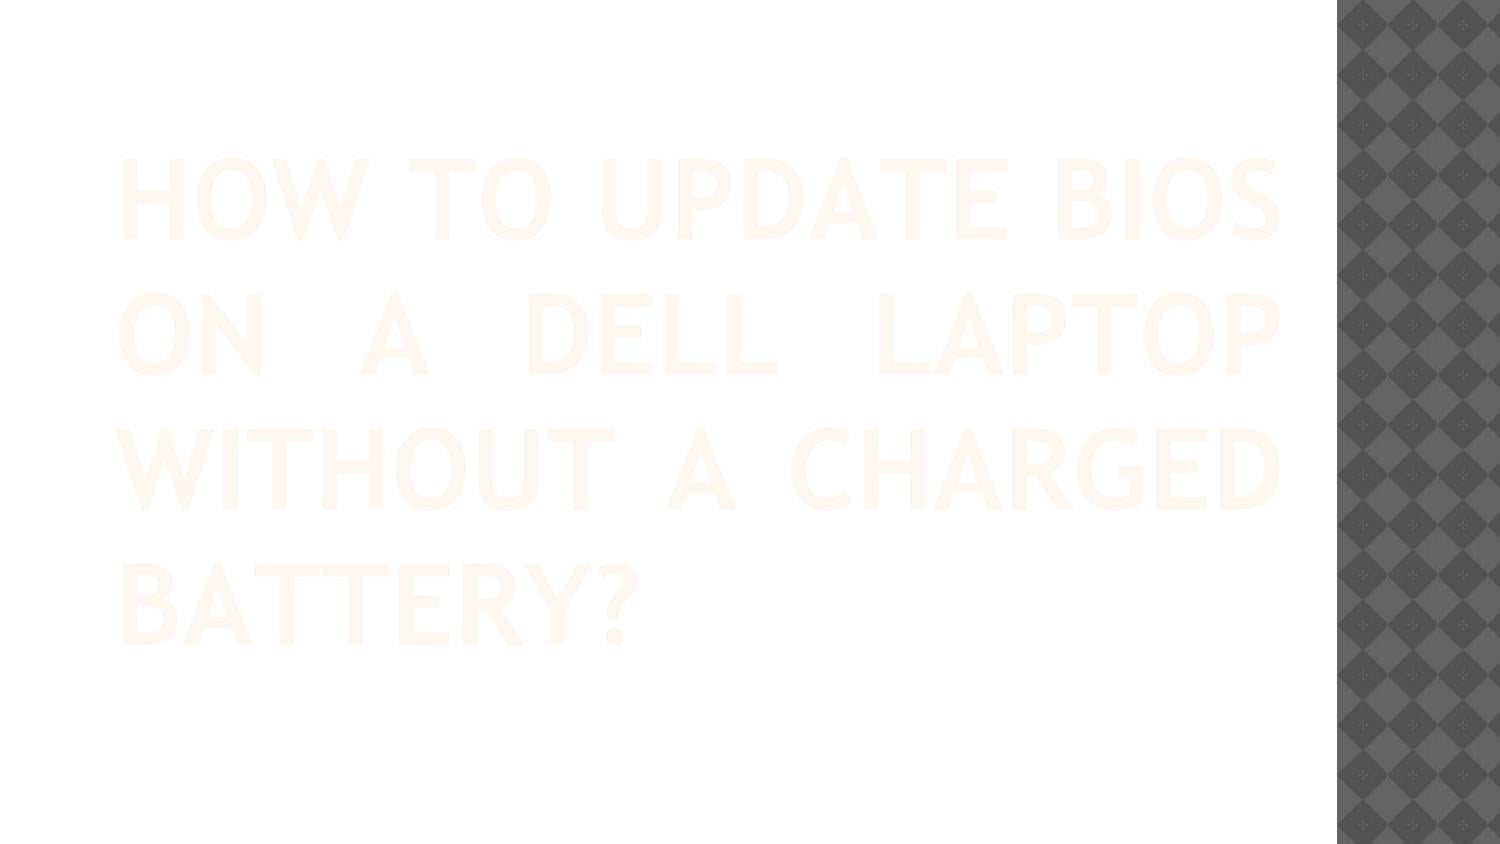 How to Update BIOS on a Dell Laptop without a Charged